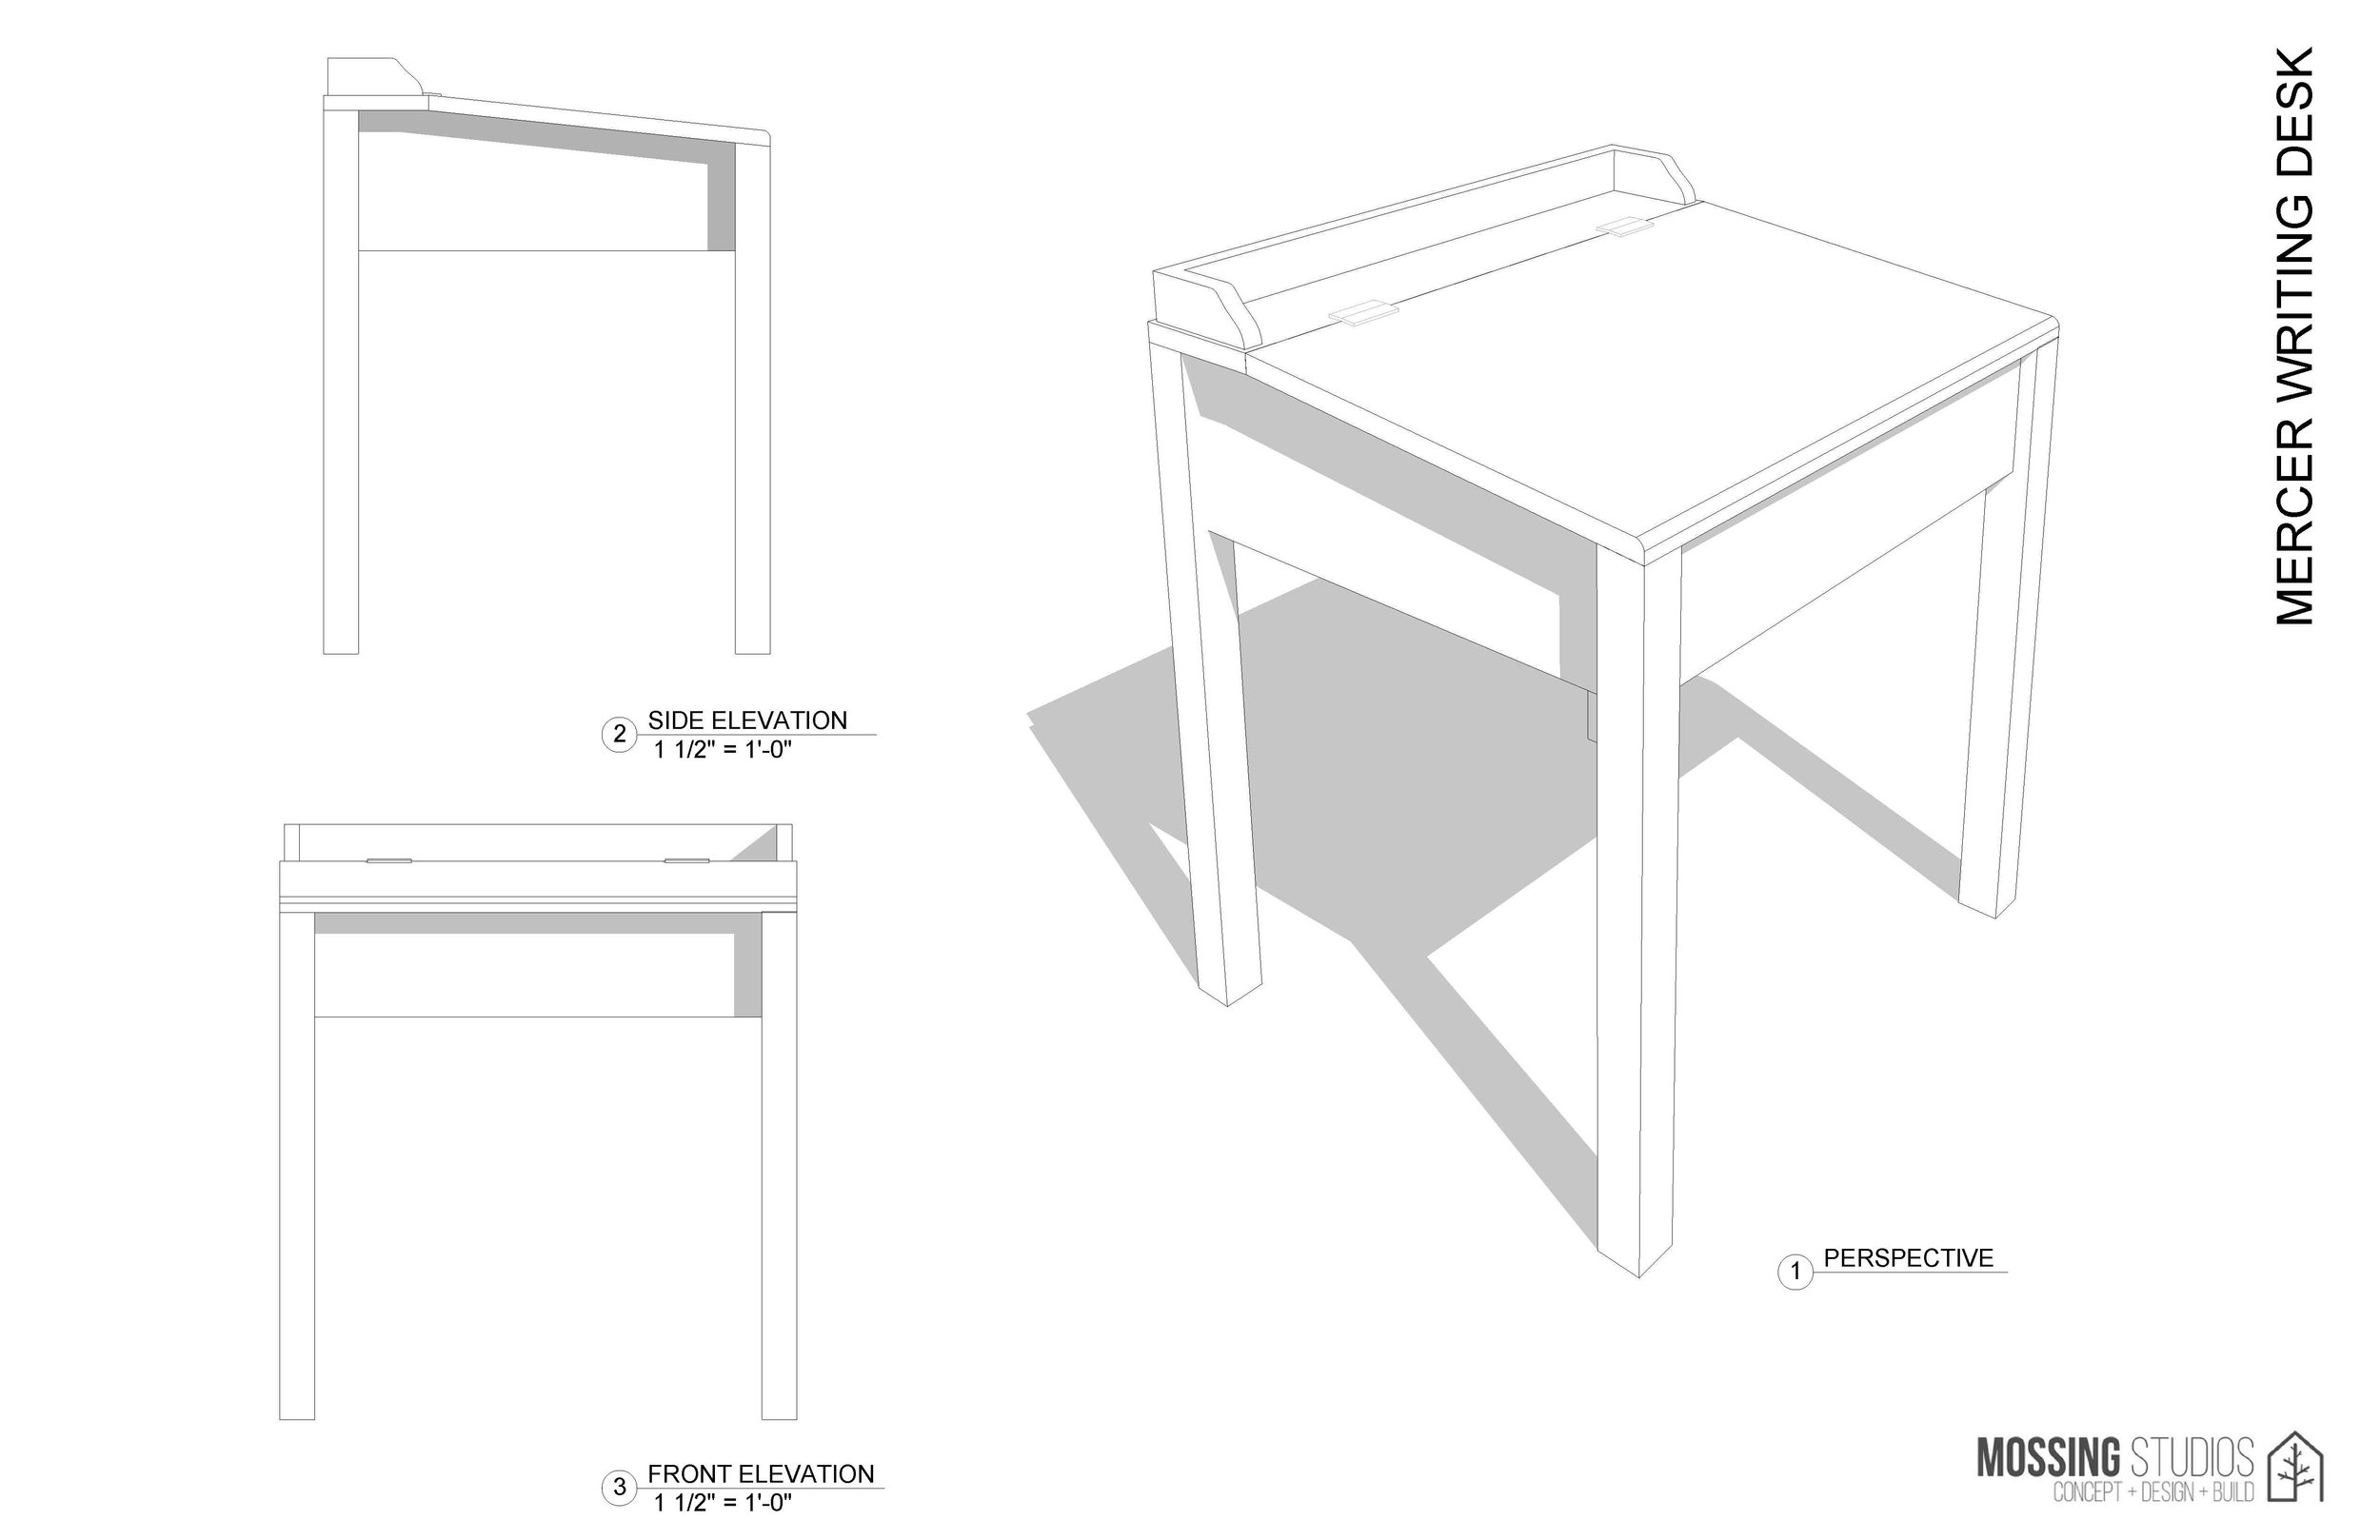 Plans for a writing desk inspired by the legacy of Johnny Mercer. Collaboration between  Mossing Studios  and  Savannah Technical College .